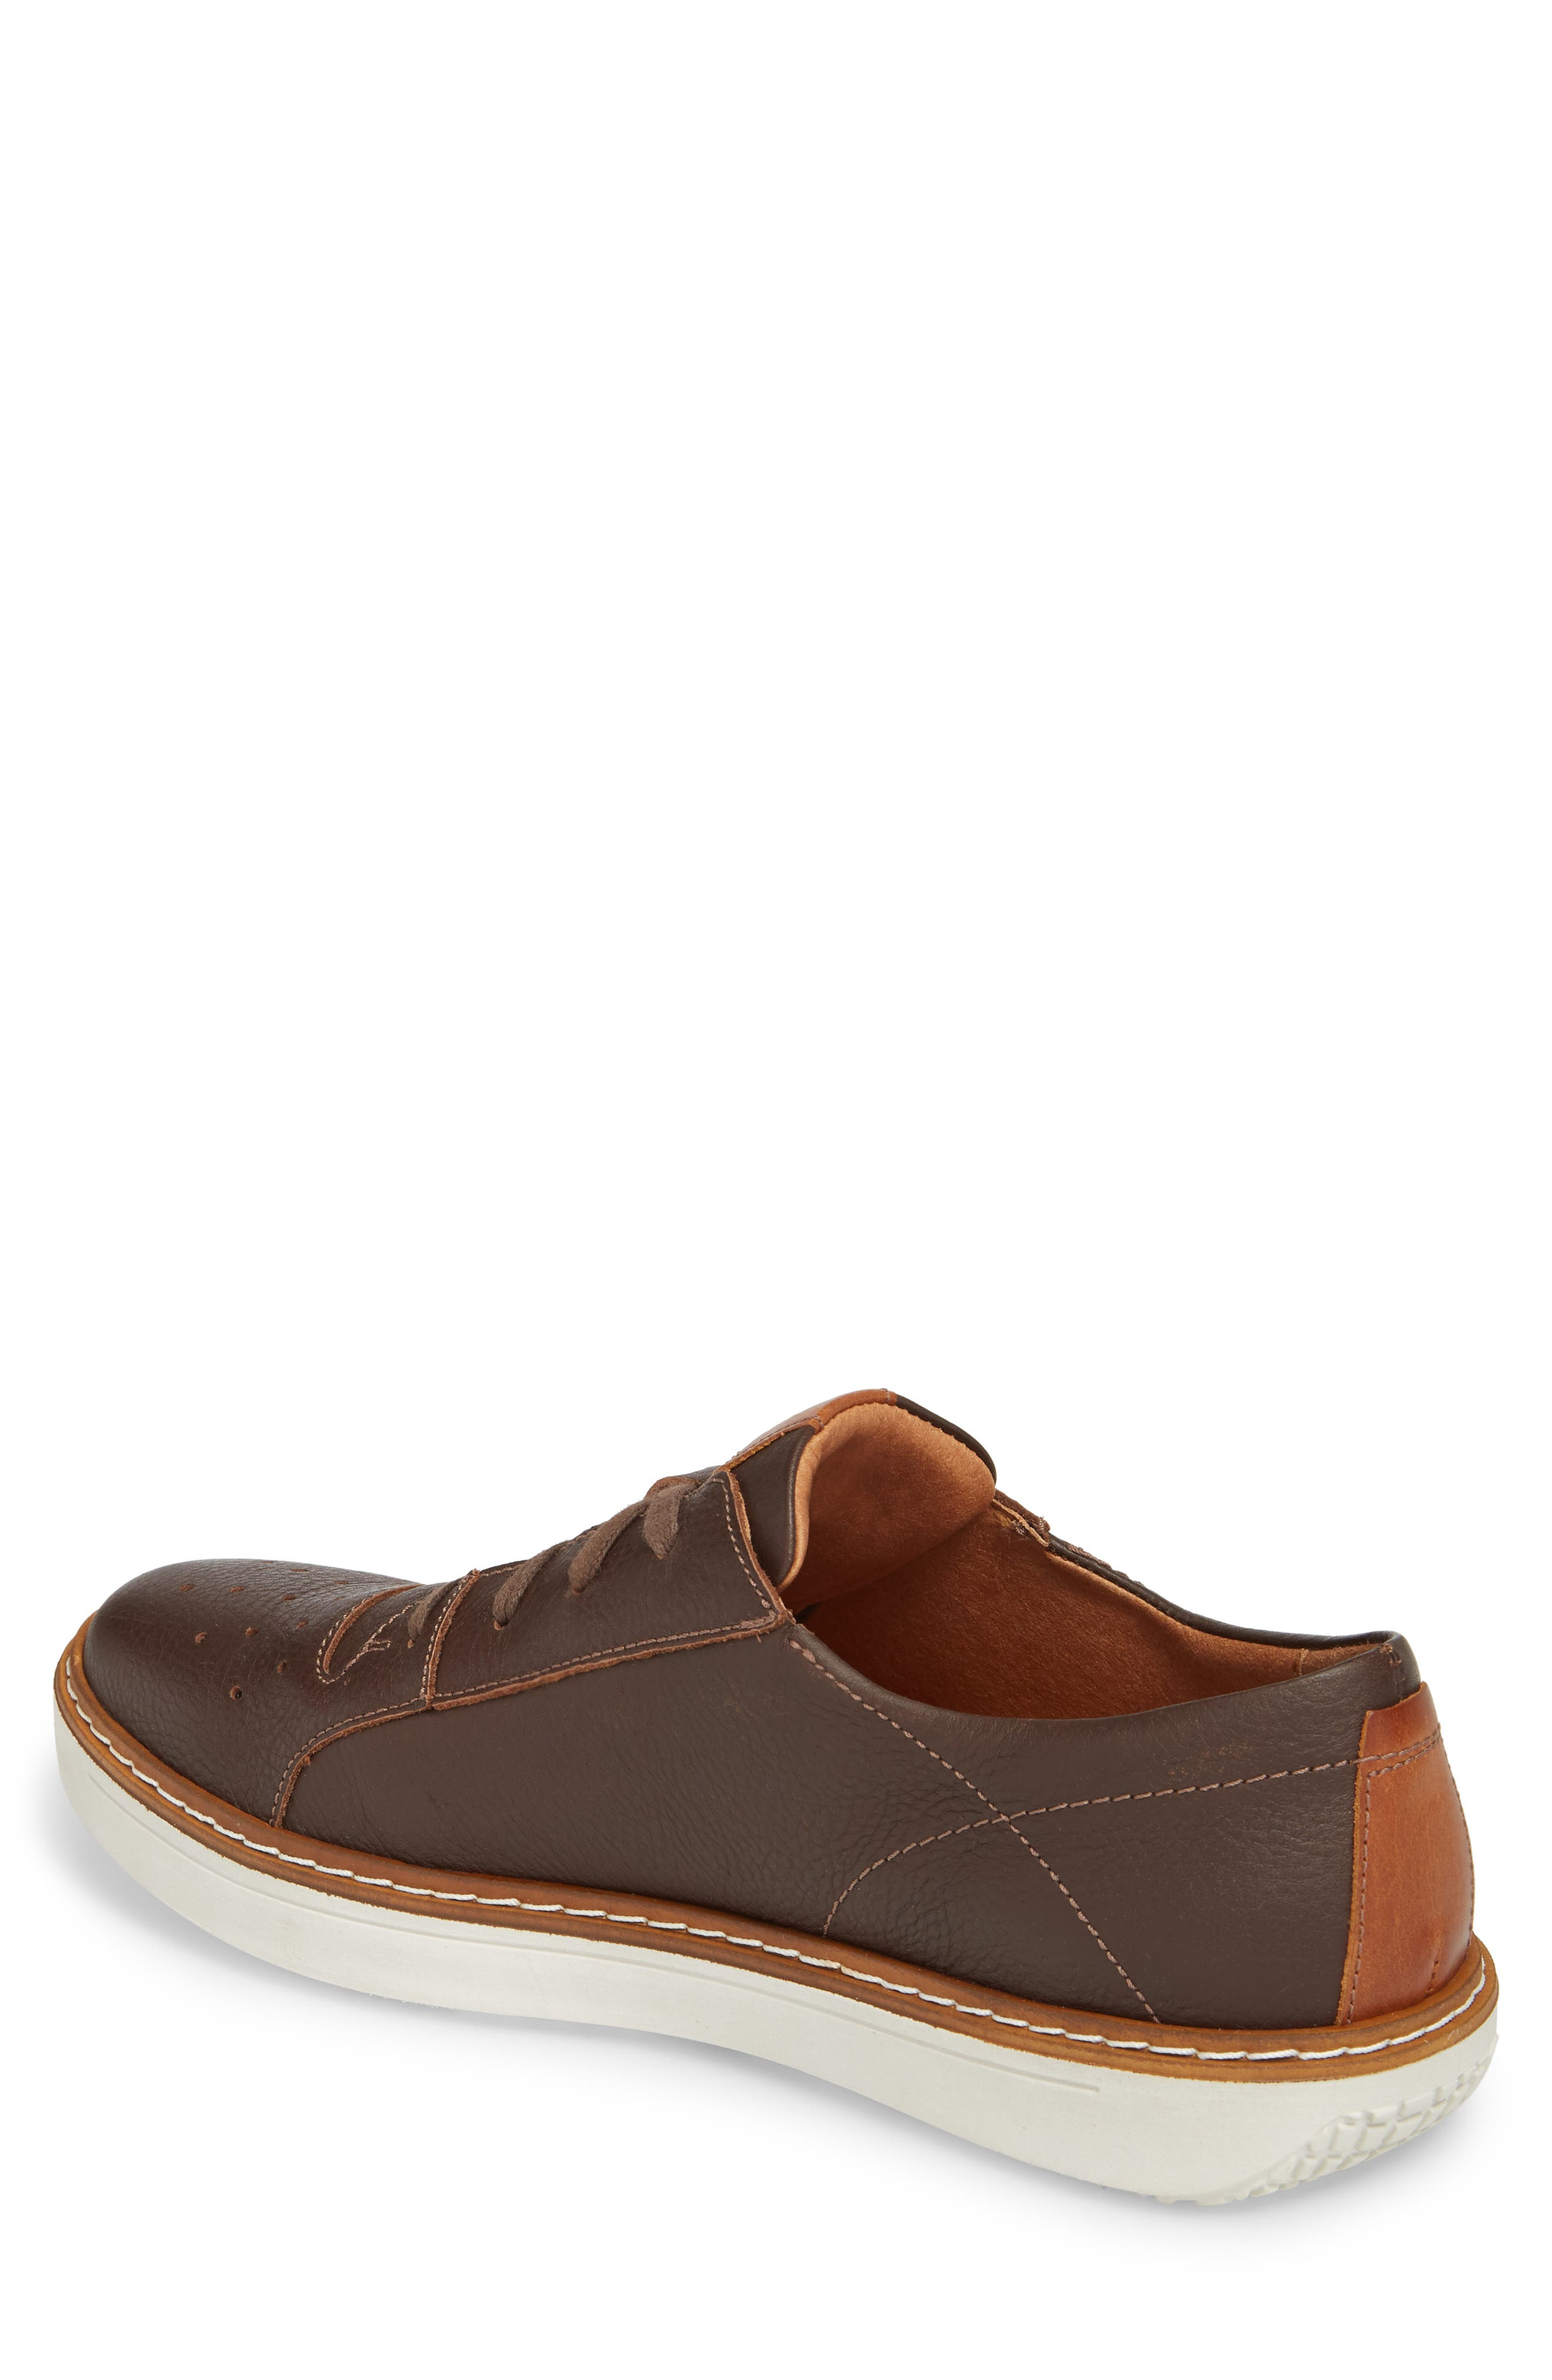 Quentin 03 Low Top Sneaker,                             Alternate thumbnail 2, color,                             Brown Kombi Leather